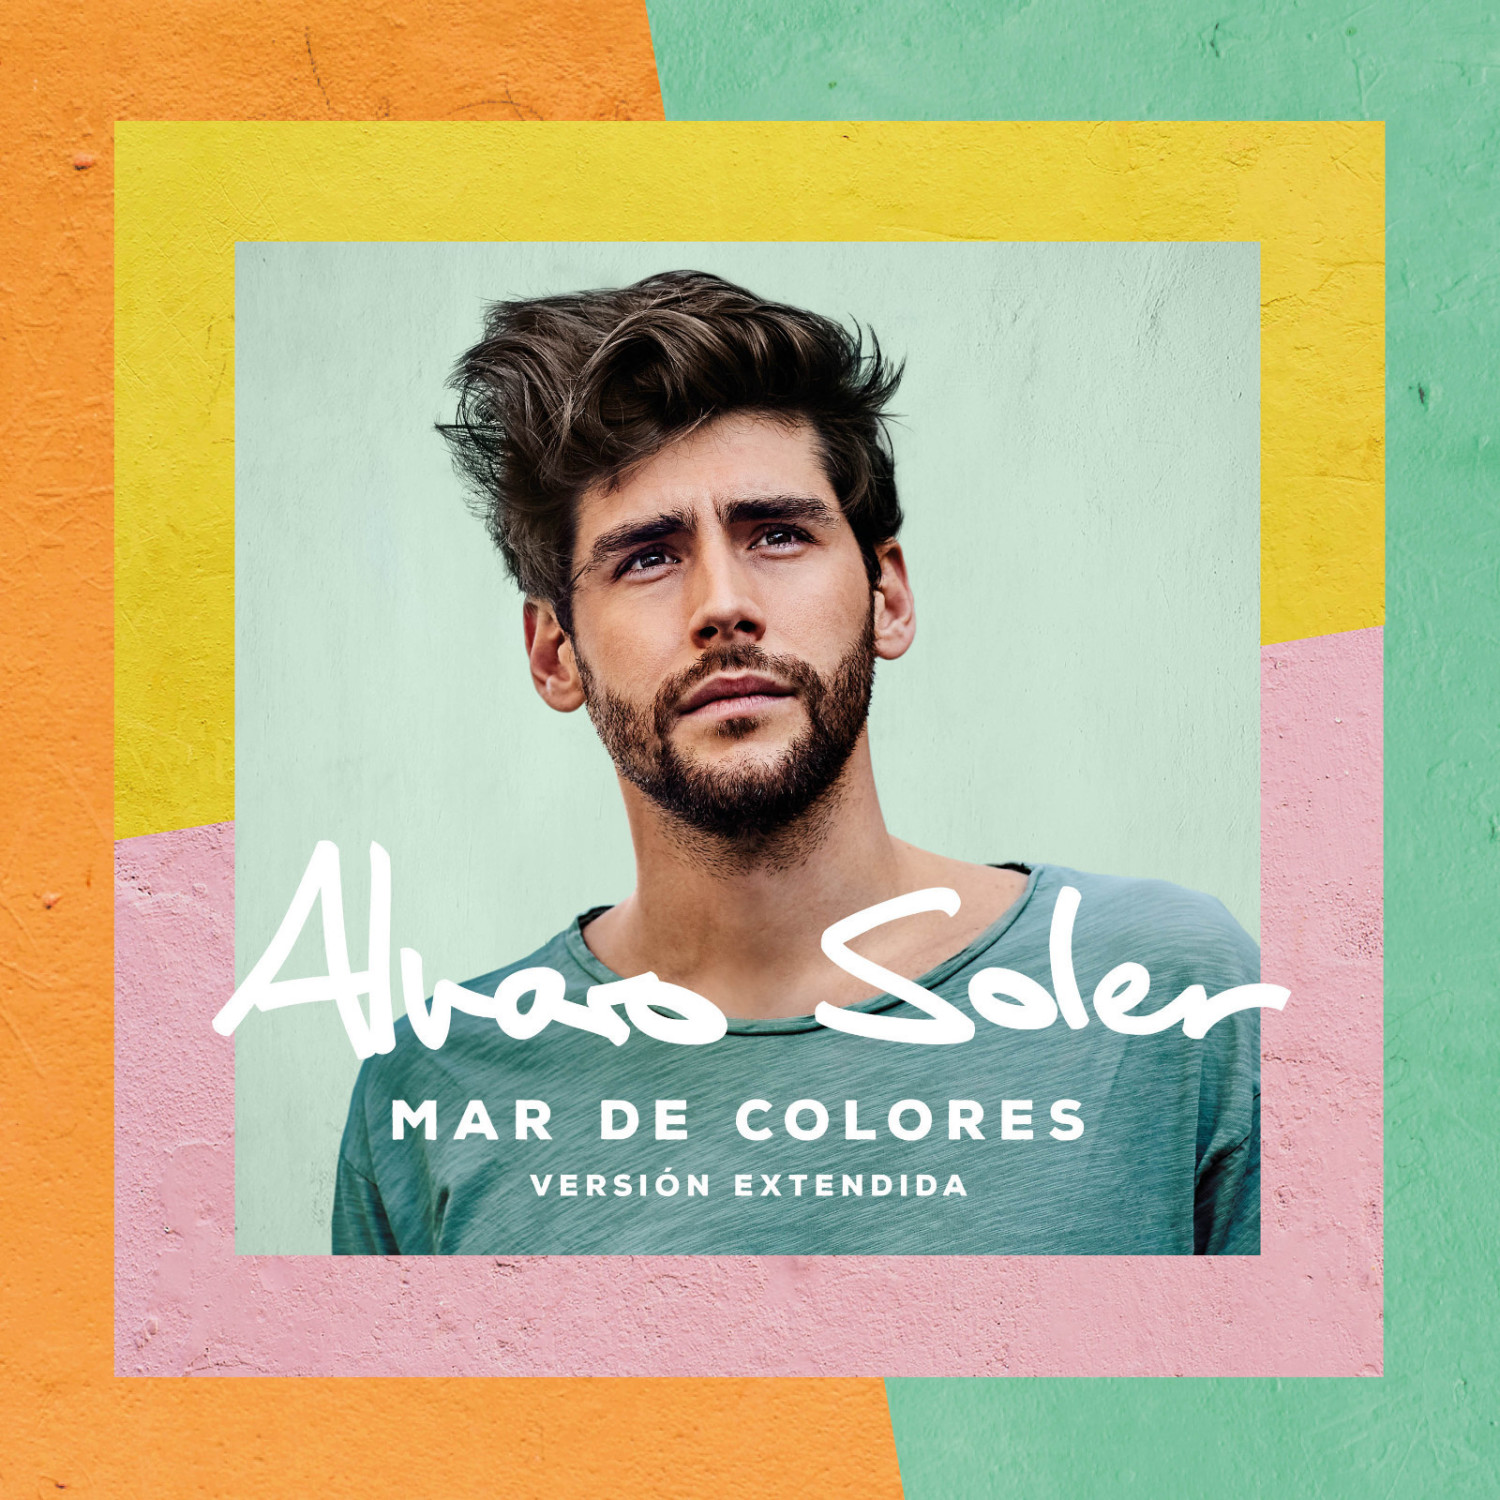 Alvaro Soler - Mar de Colores (Version Extendida) (CD)